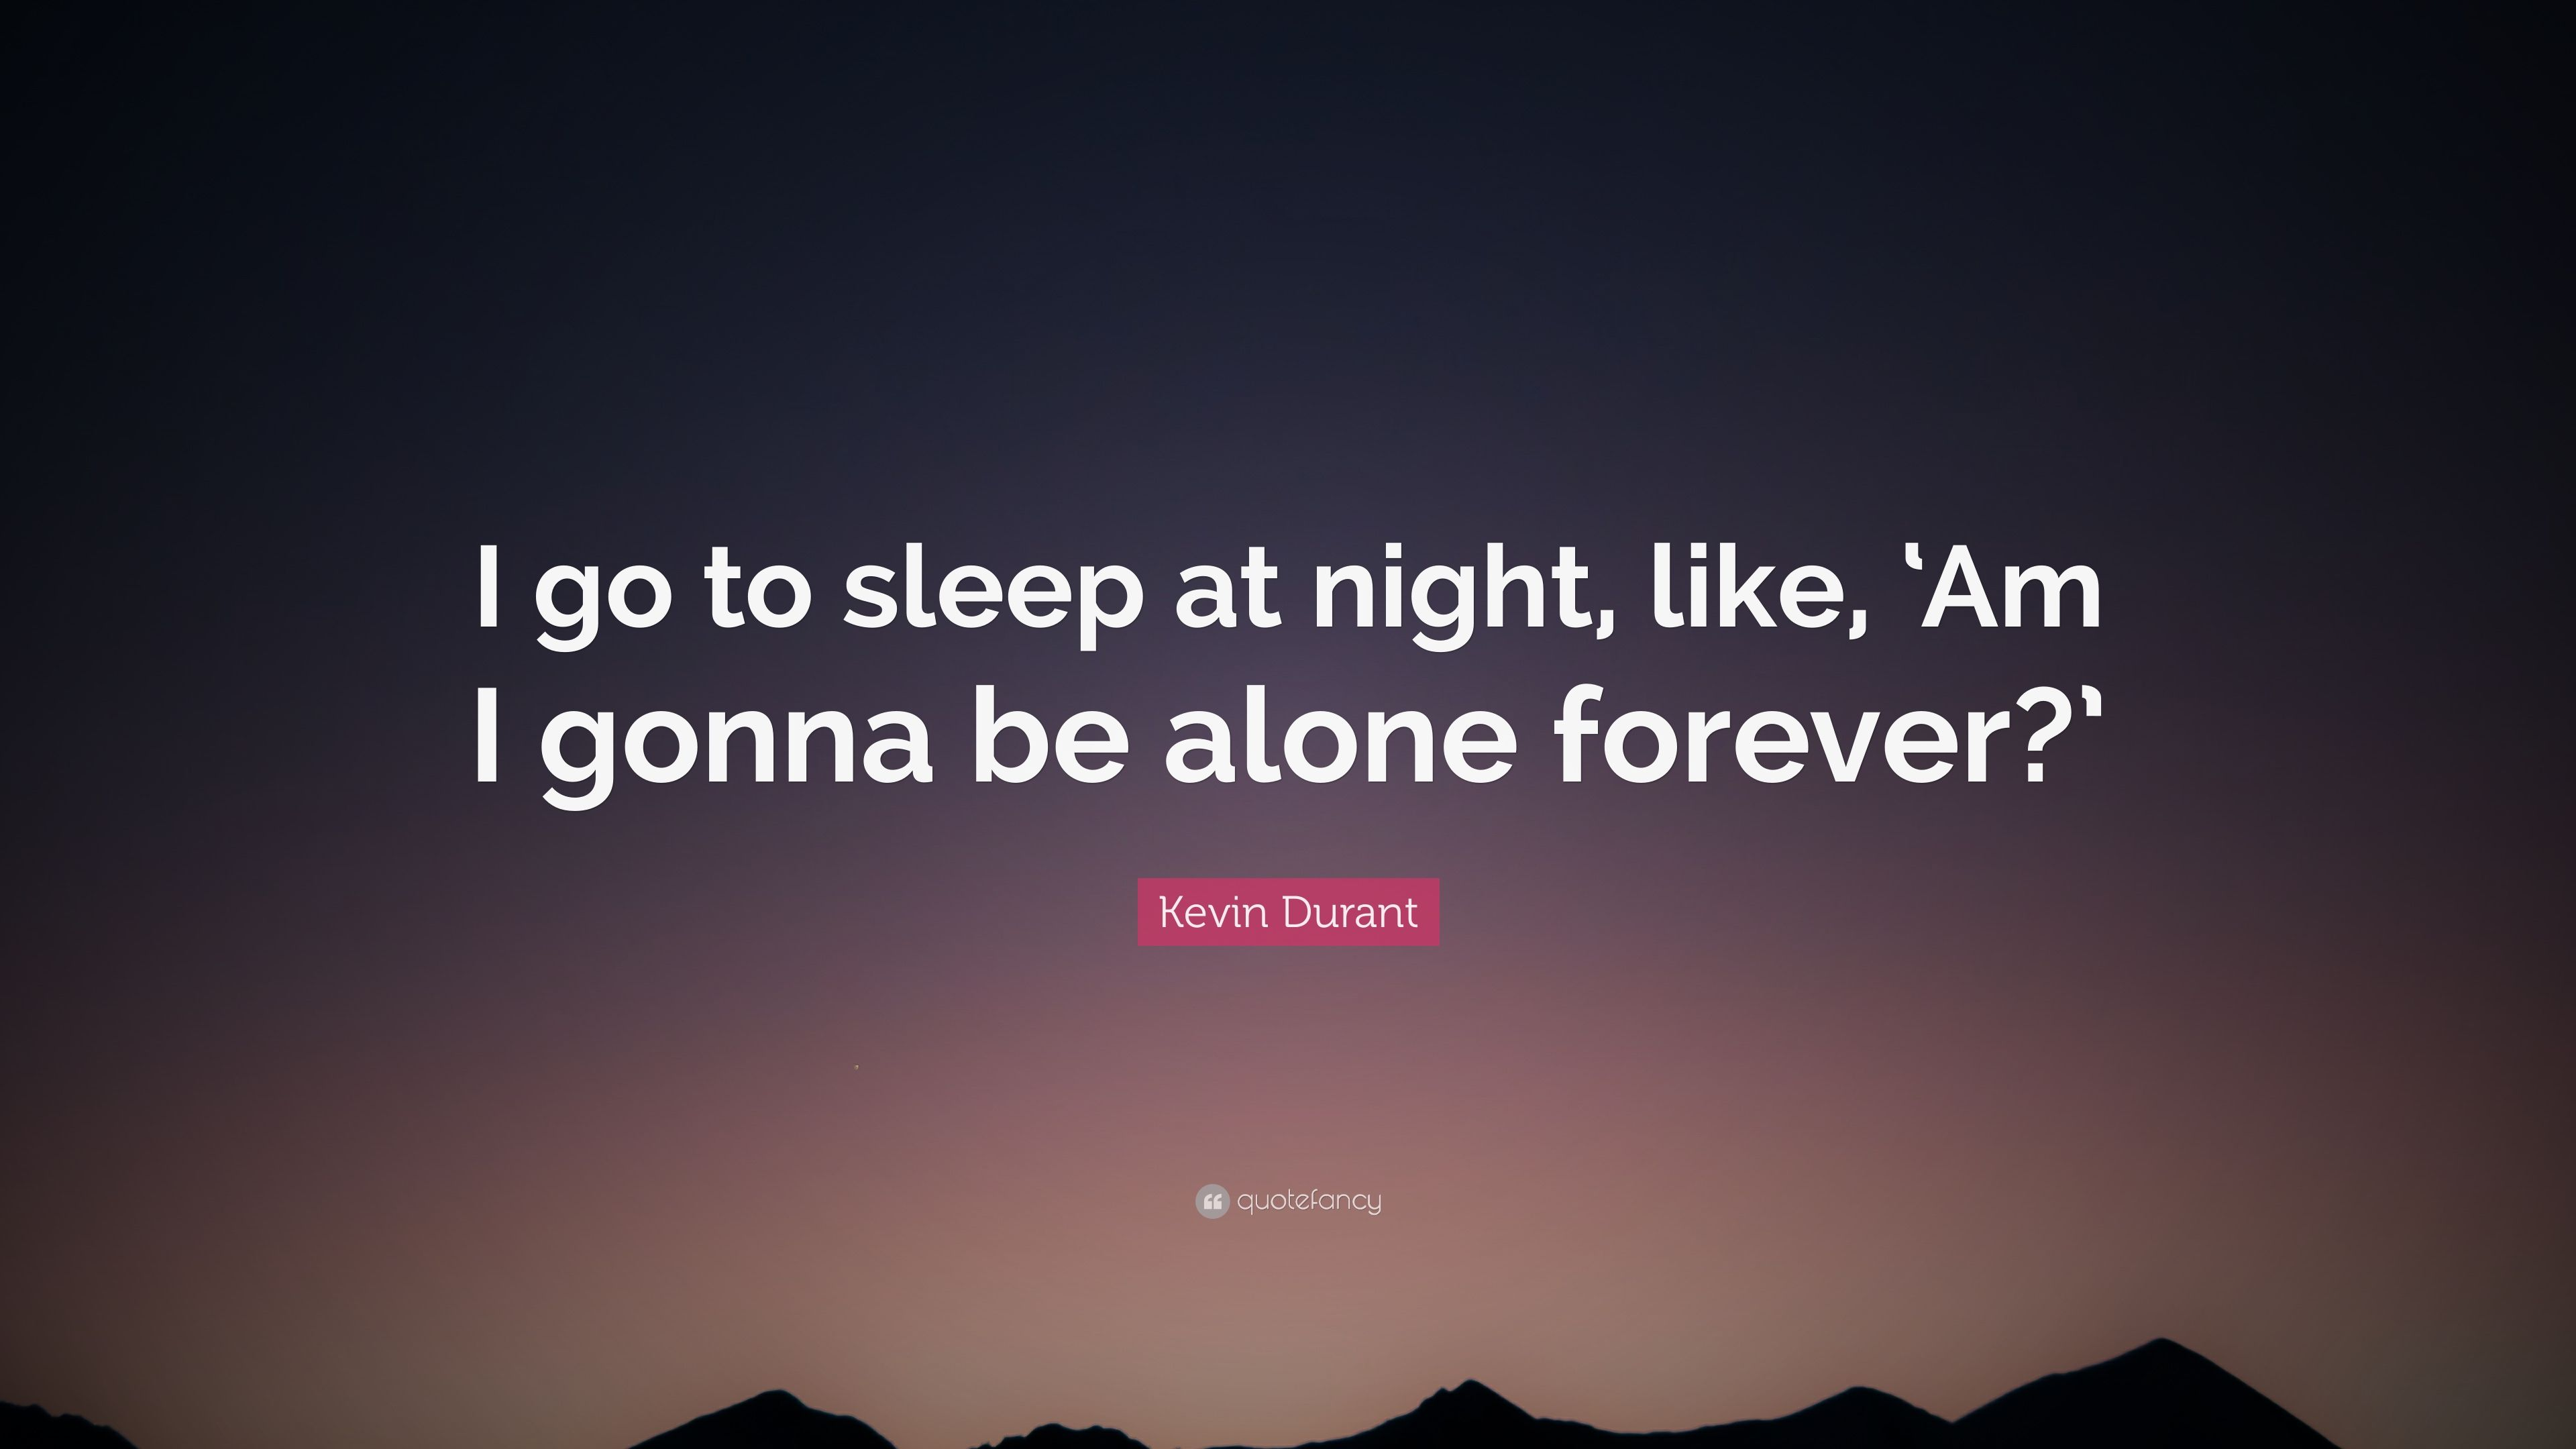 Nugt Quote Kevin Durant Quote Cool Best 25 Kevin Durant Quotes Ideas On